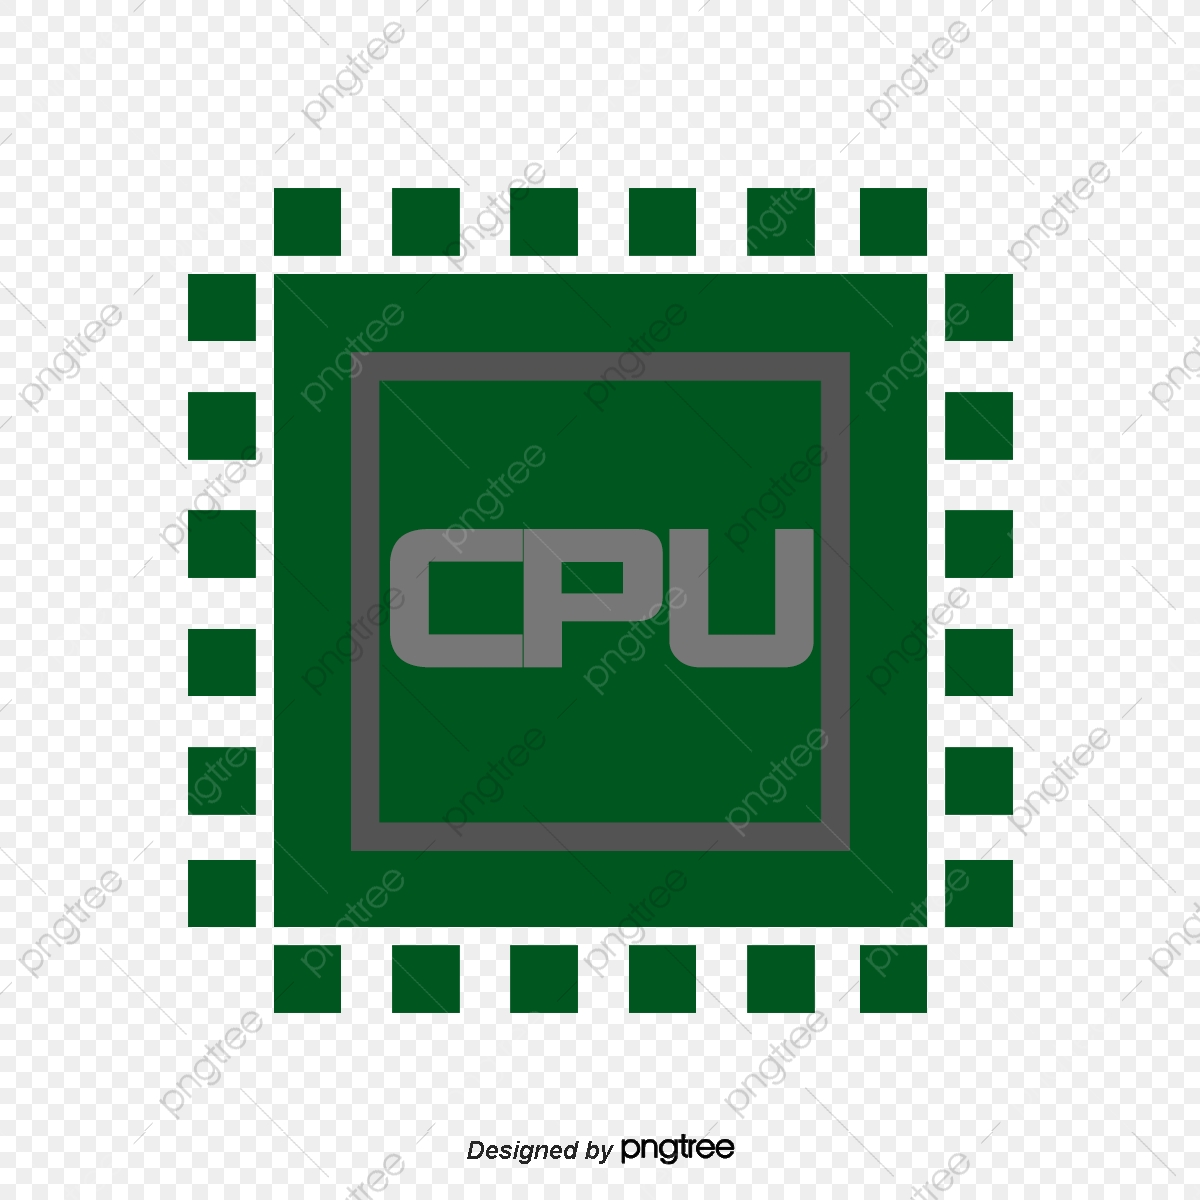 vector cpu brown cpu vector png transparent clipart image and psd file for free download https pngtree com freepng vector cpu 2114064 html